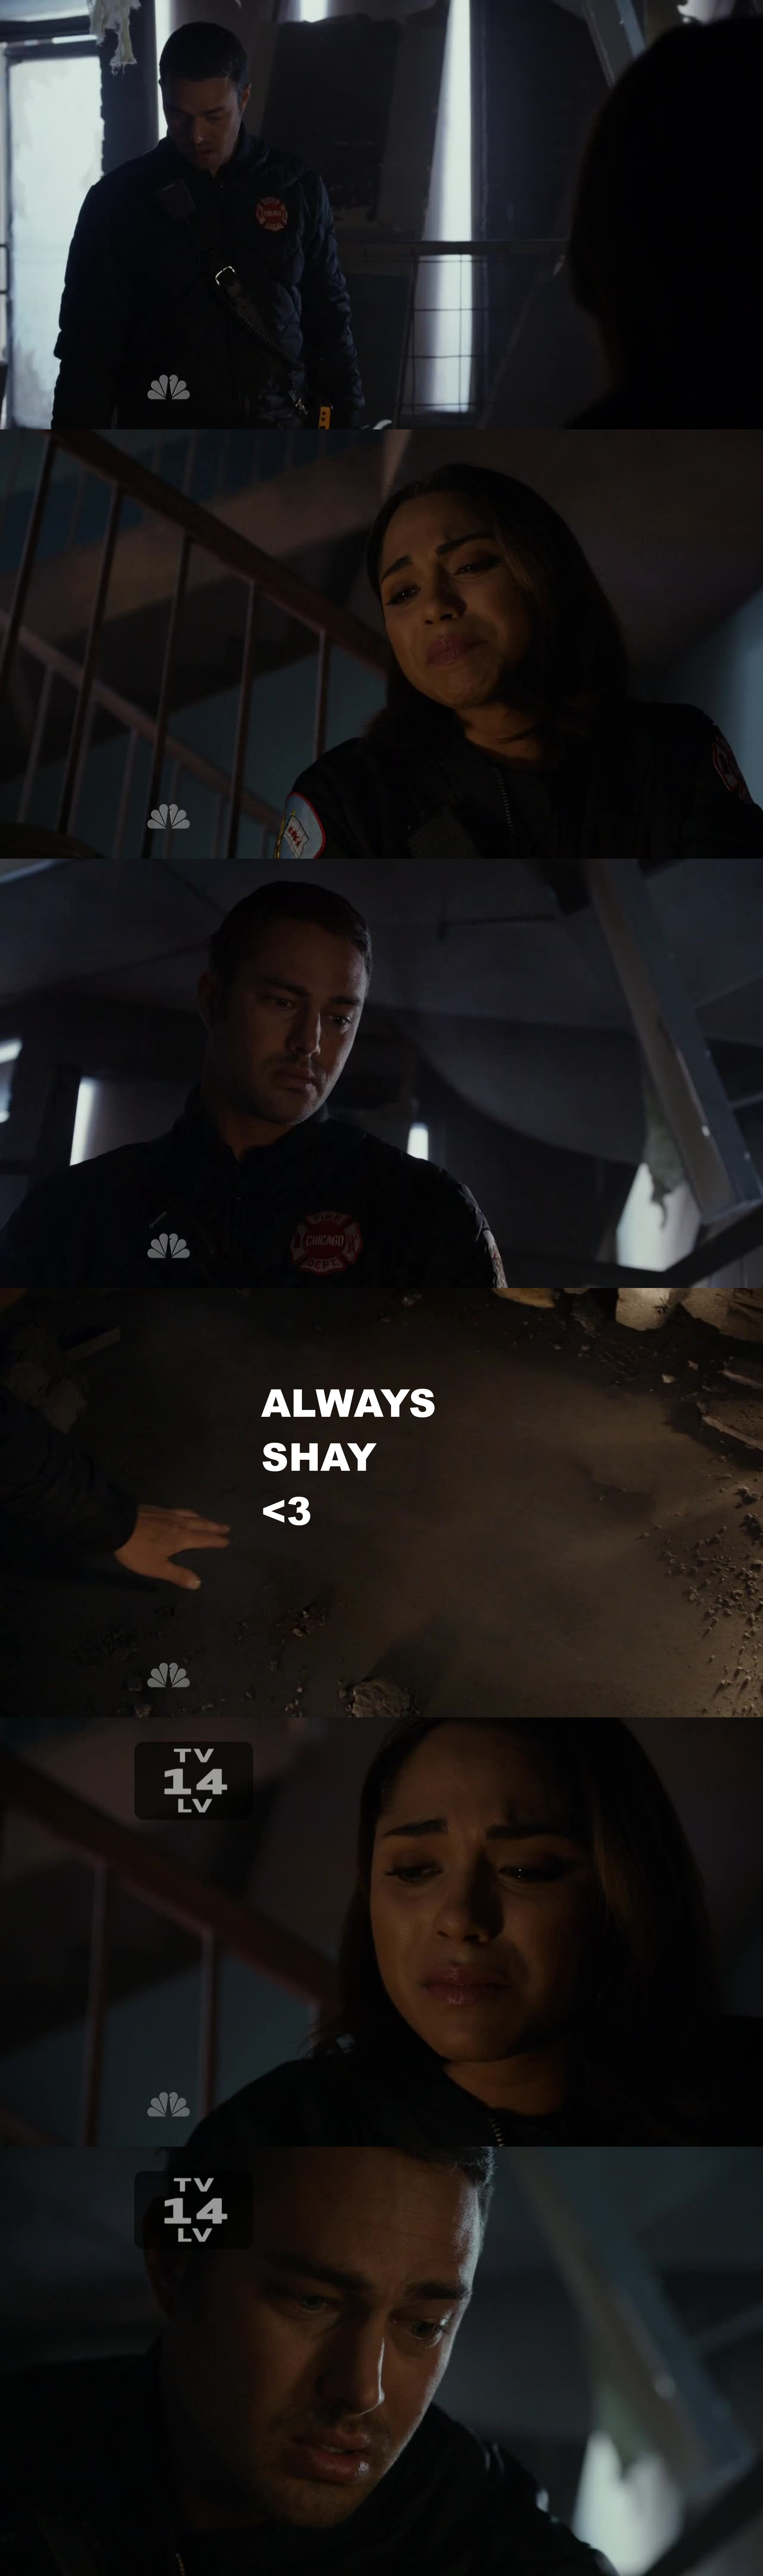 THAT WAS SO HURTFUL, I ALMOST BURST INTO TEARS :'( <3 I miss SHAY soooo much :(